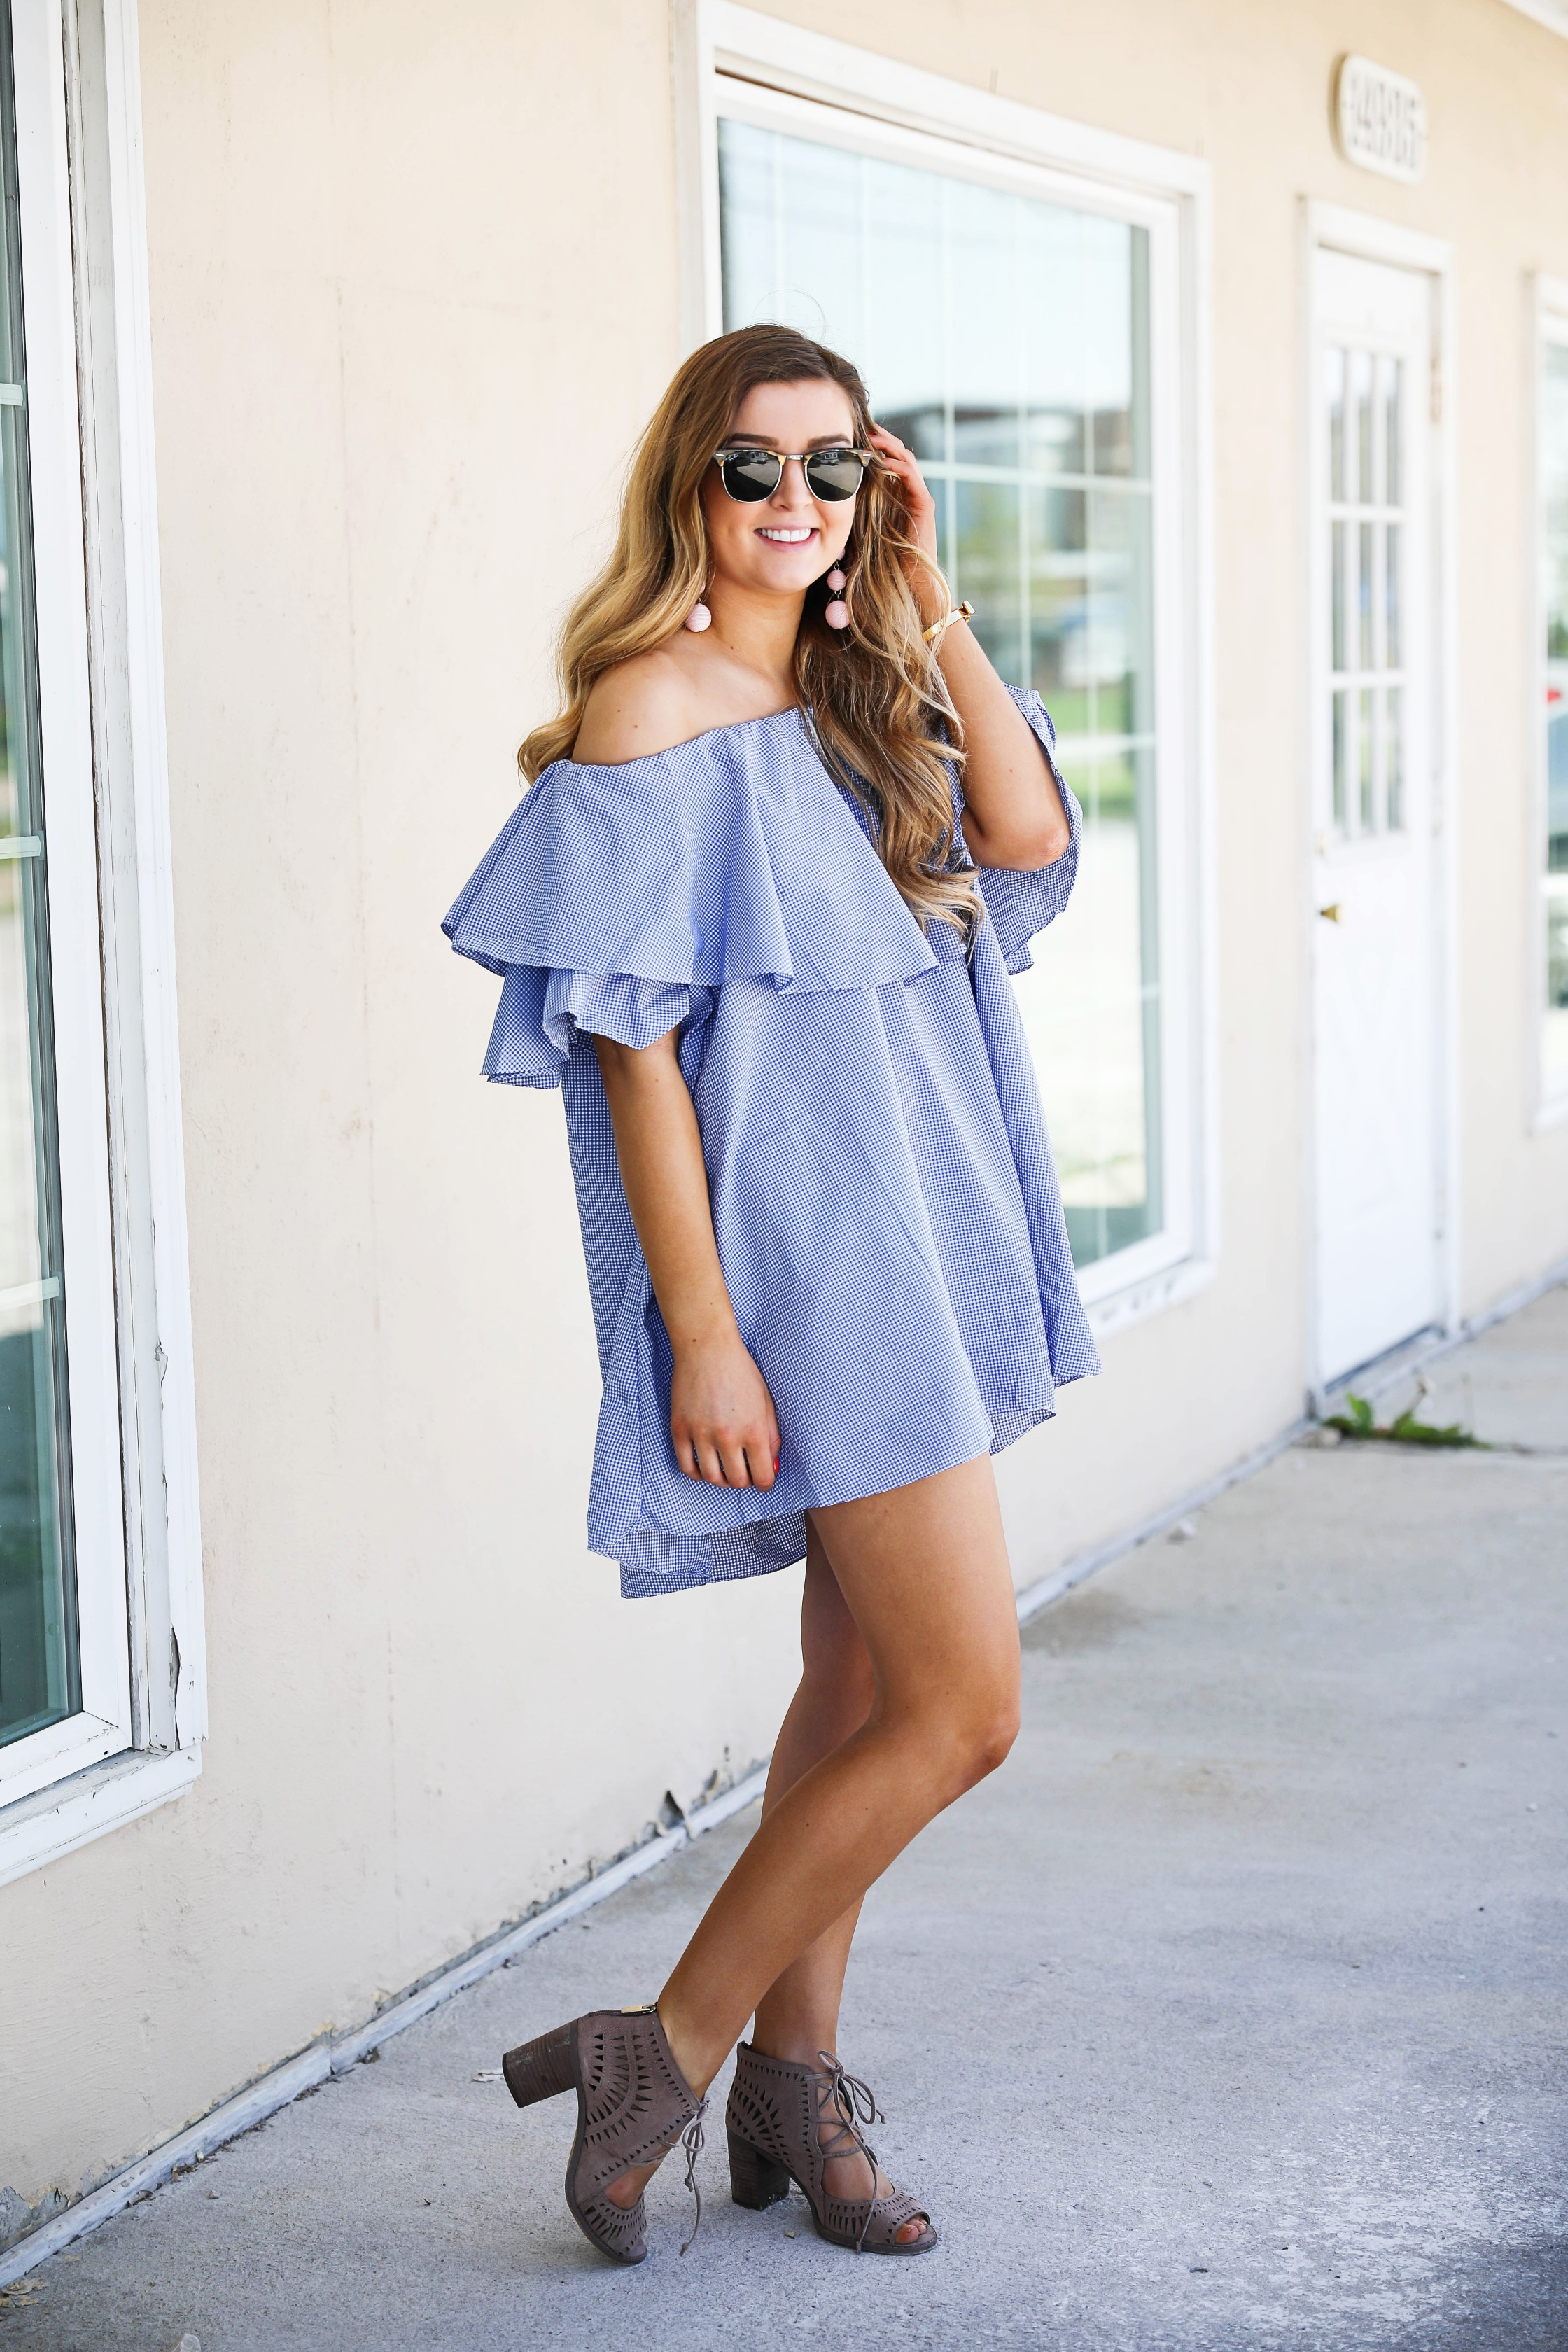 Off the shoulder gingham ruffle dress perfect for spring outfit ideas or summer dresses. by Lauren Lindmark on dailydoseofcharm.com daily dose of charm